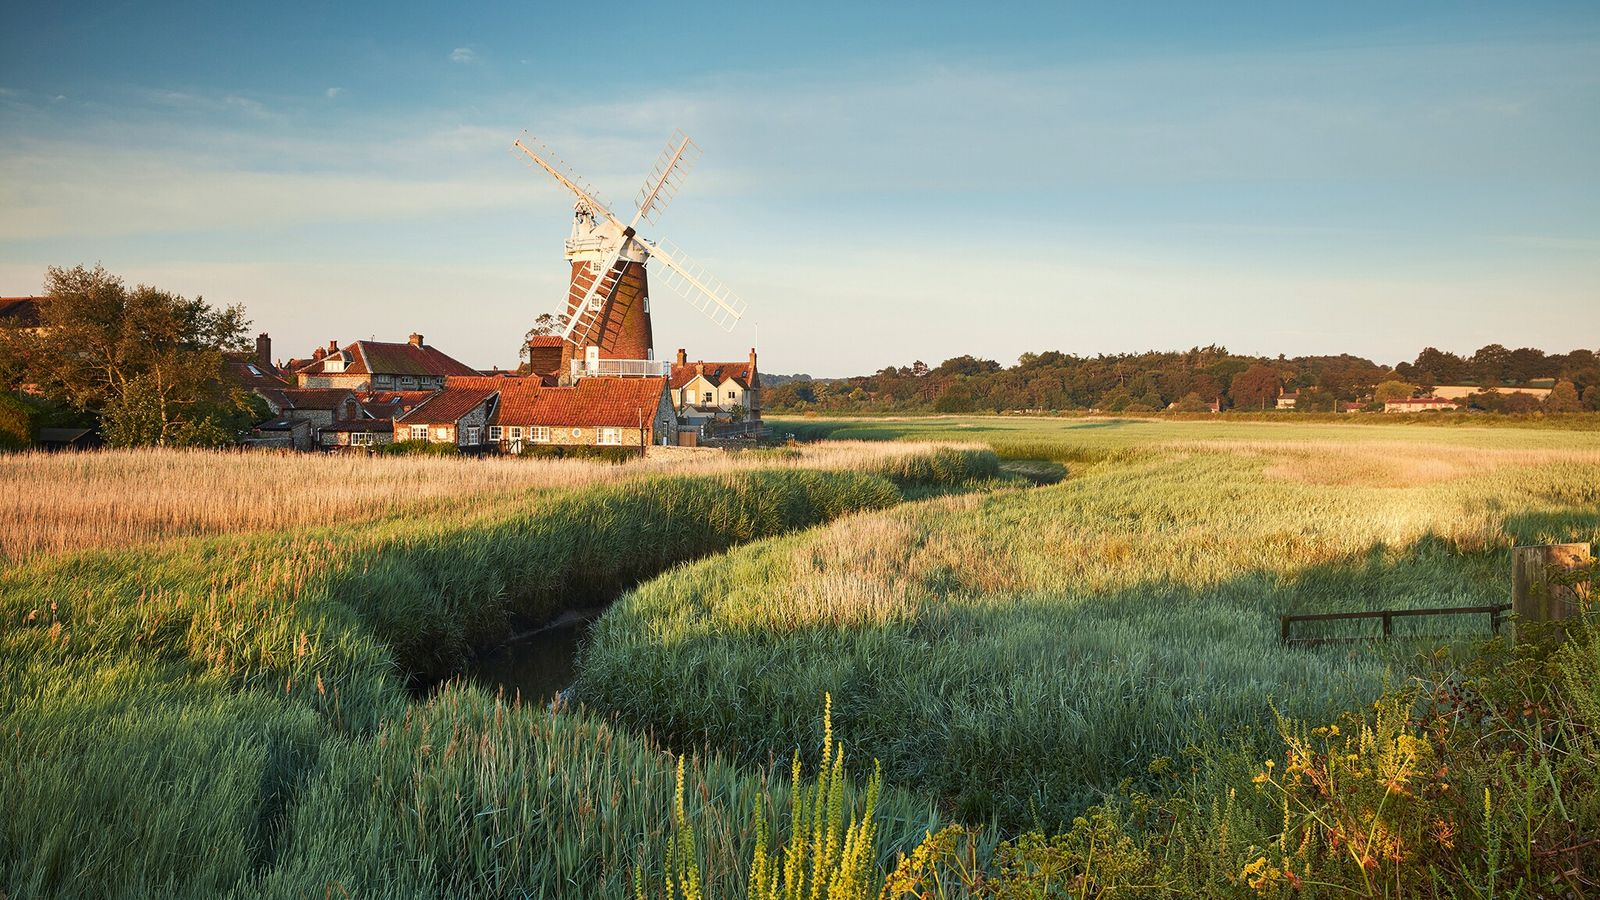 Wend your way east from the marshes of Brancaster, home to some of the country's finest seafood, through ...